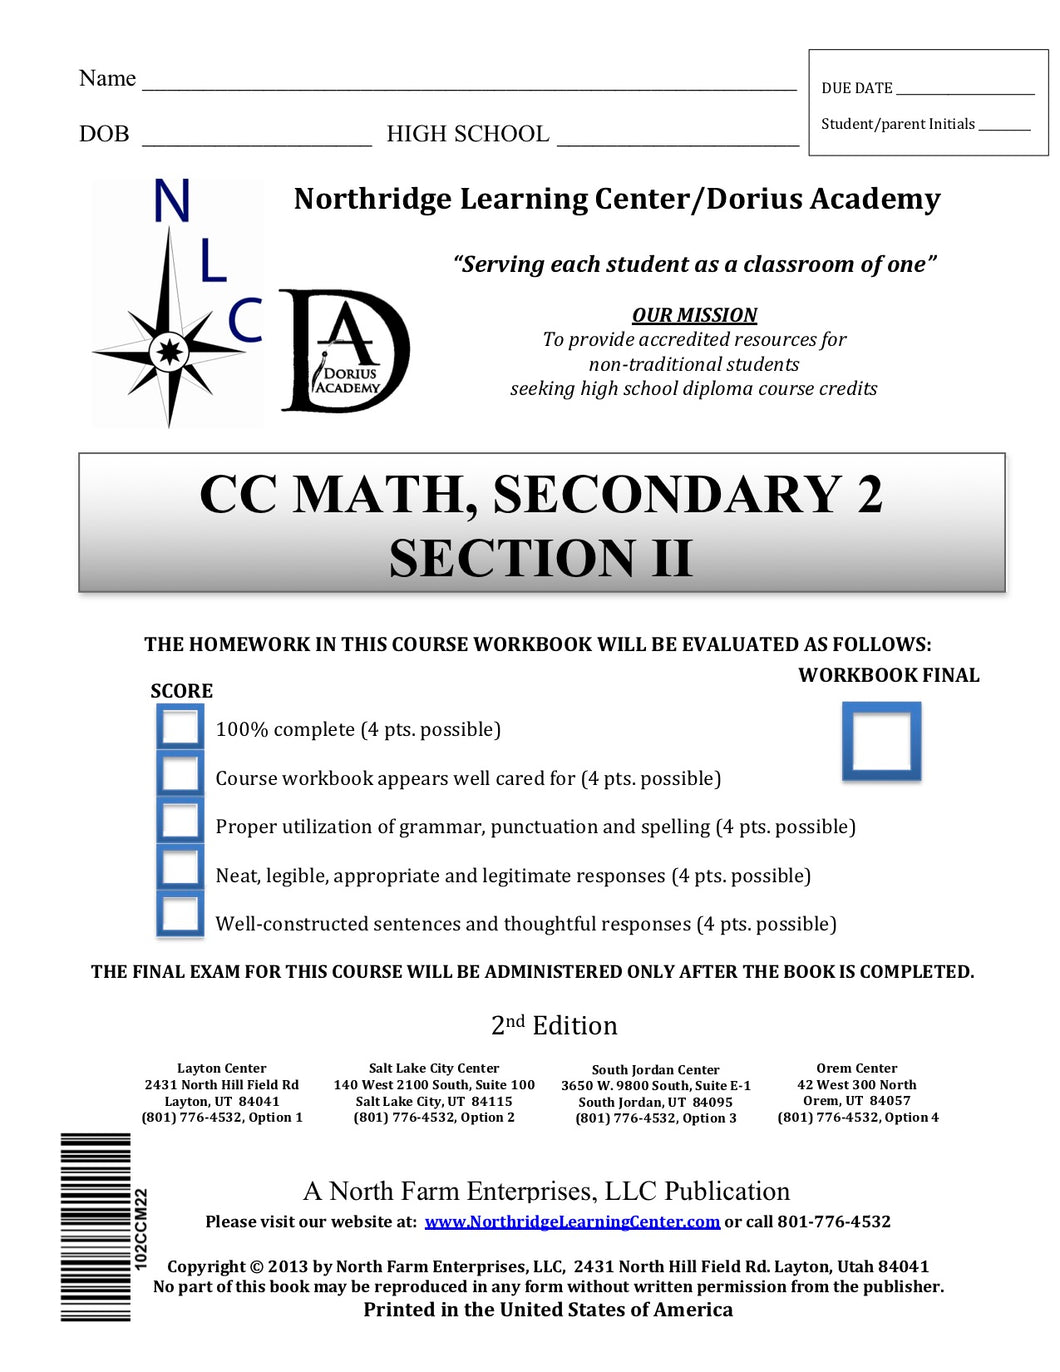 CC Math, Secondary 2, Section II